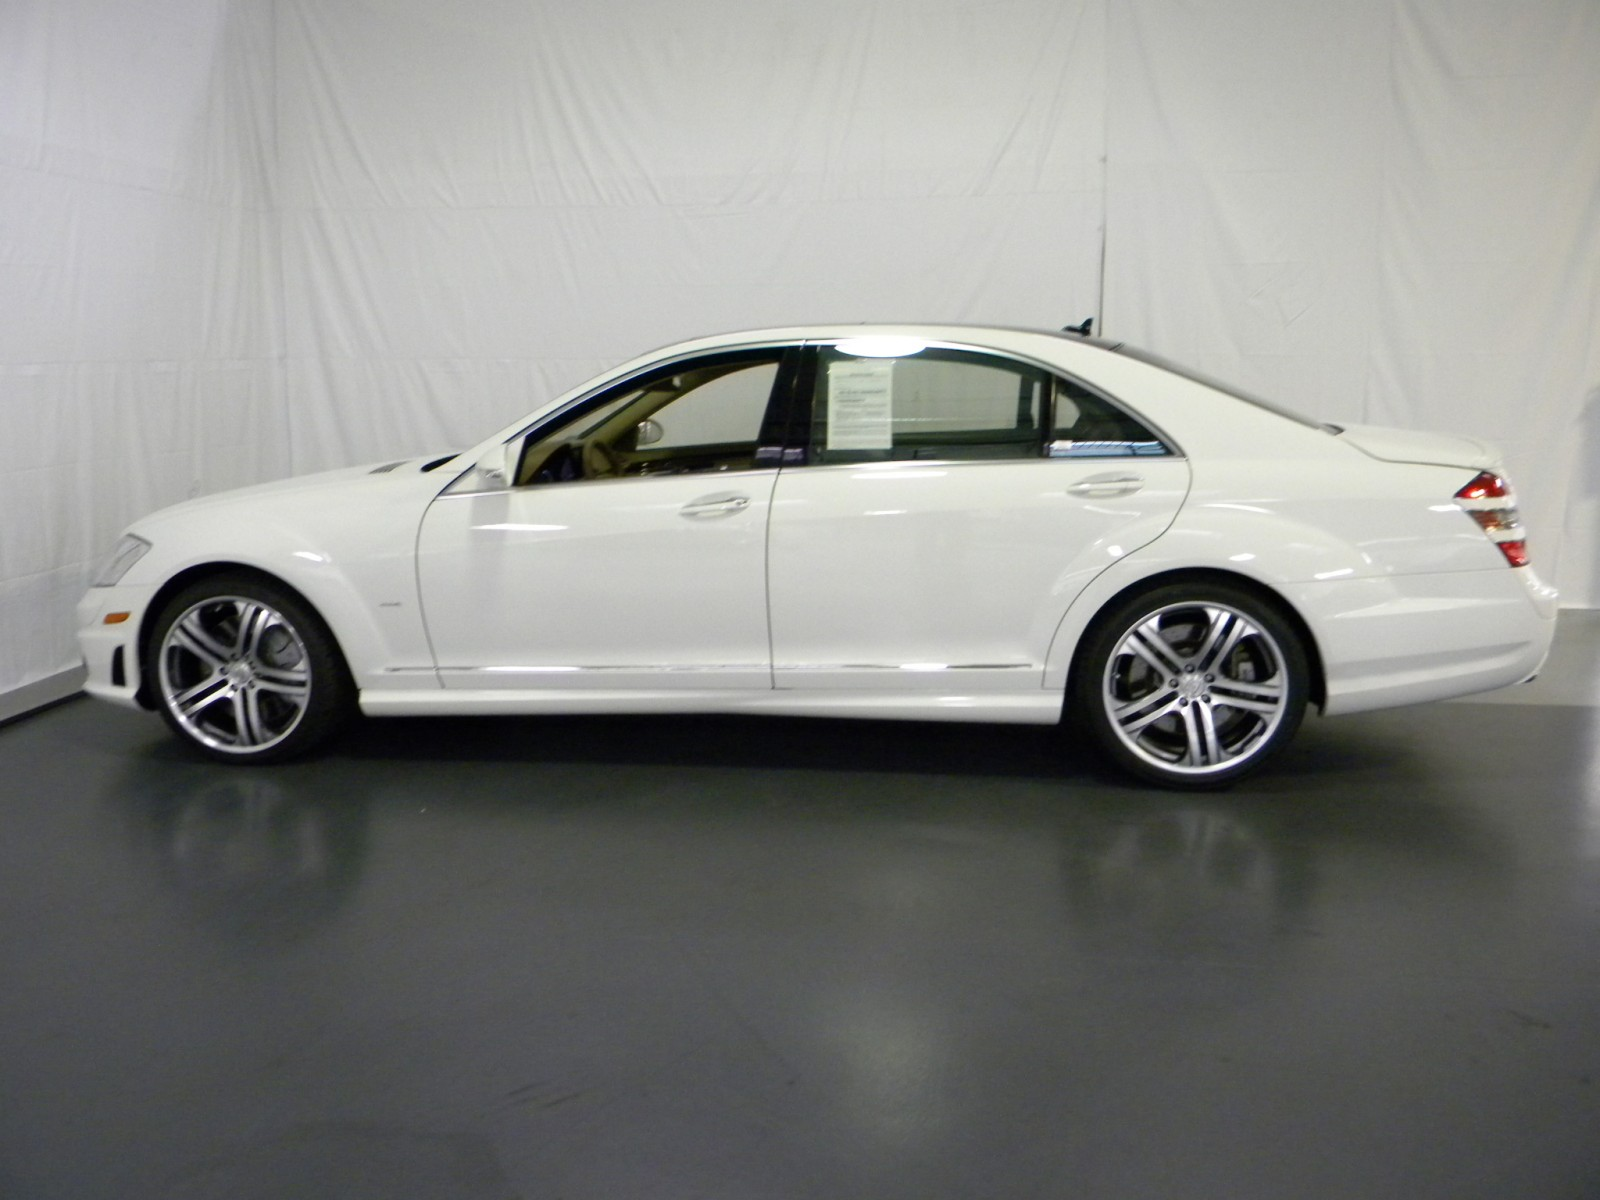 2008 mercedes benz s class image 1 for Mercedes benz s500 2008